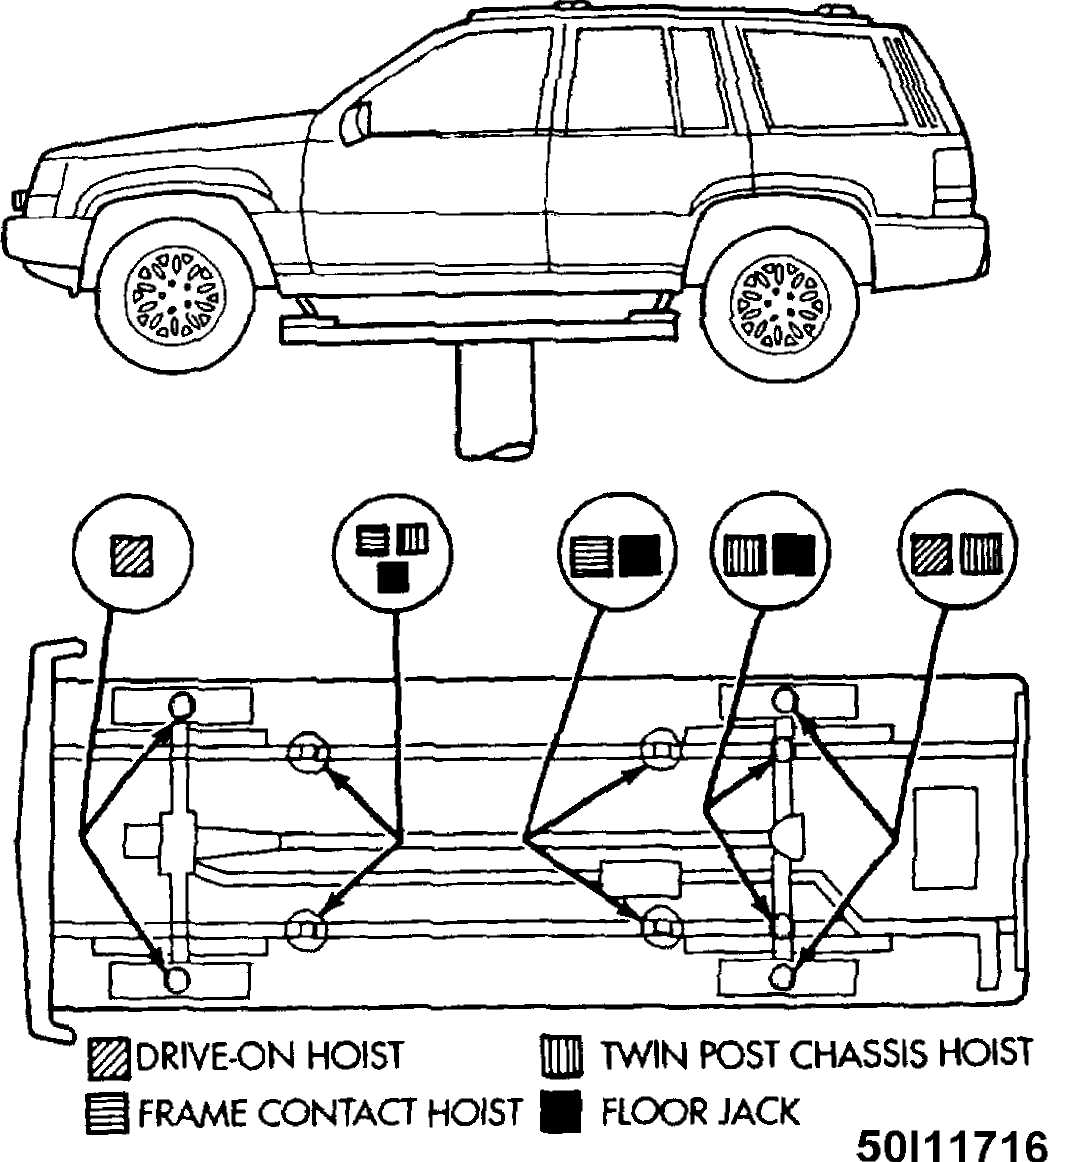 Jacking Hoisting 1993 Jeep Cherokee Xj 2000 Front Axle Diagram Wiring Photos For Help 3 Identifying Hoist Lifting Points Grand Courtesy Of Chrysler Corp